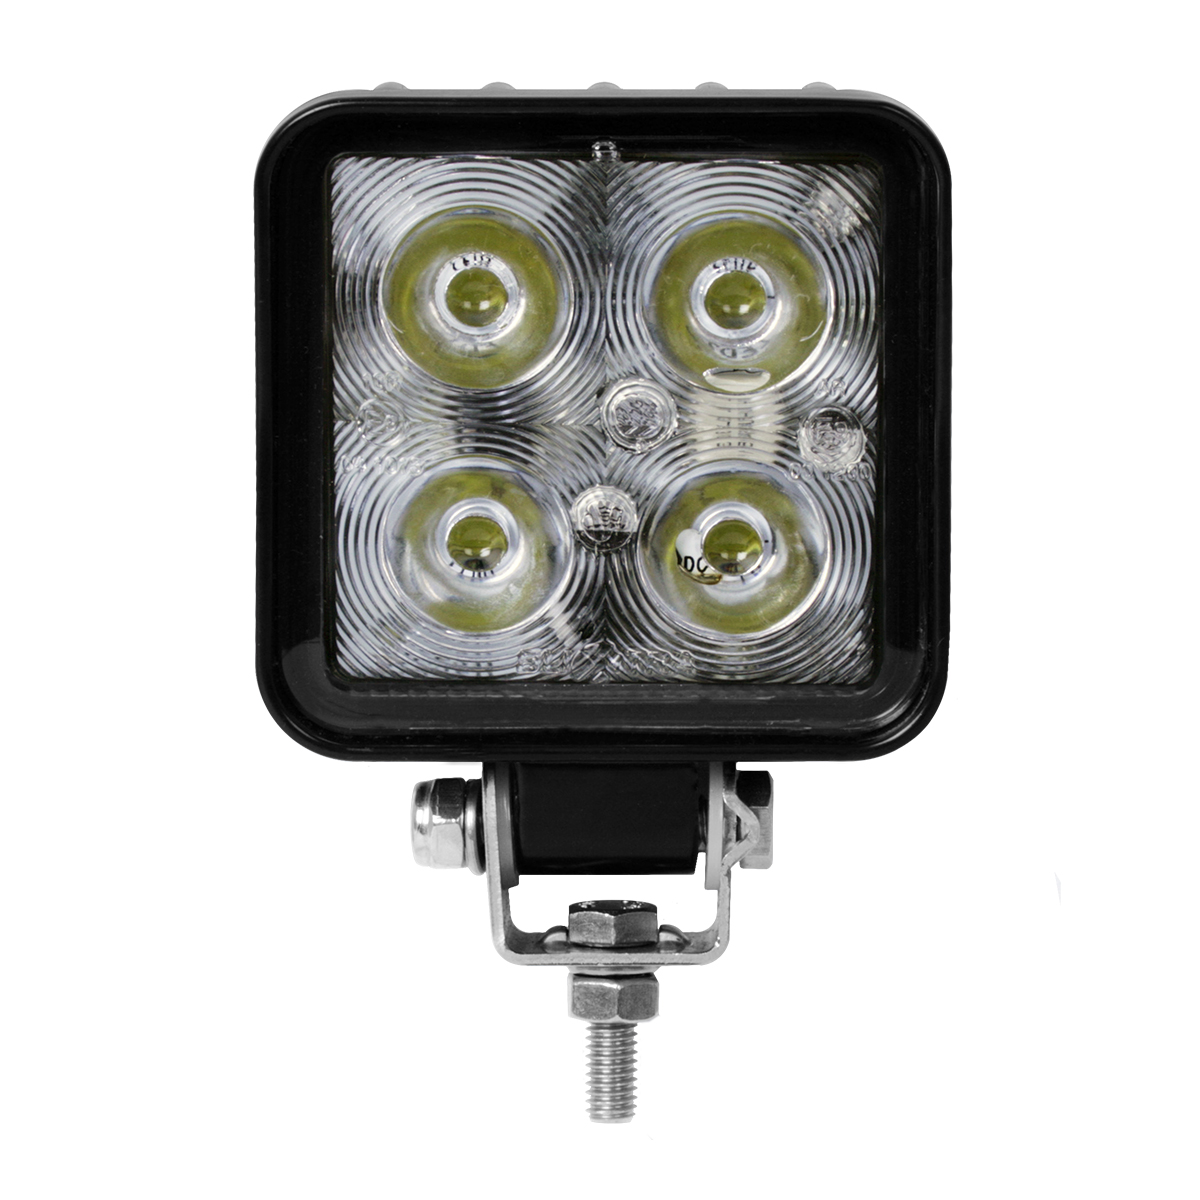 76362 Small High Power LED Work Light